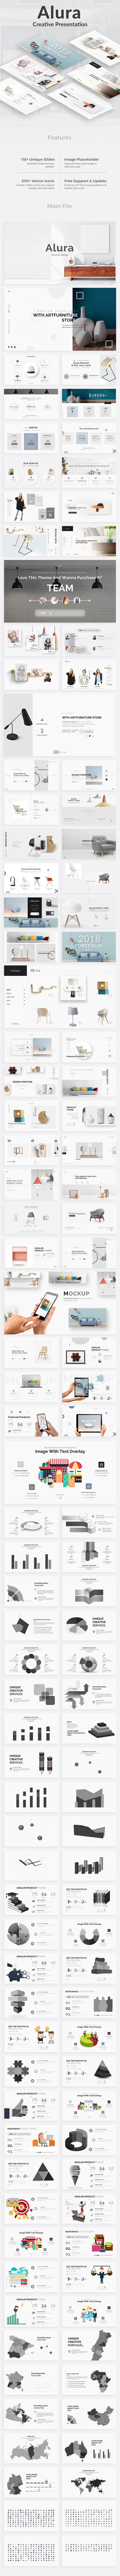 Alura Minimal and Furniture Design Powerpoint Template - Creative PowerPoint Templates